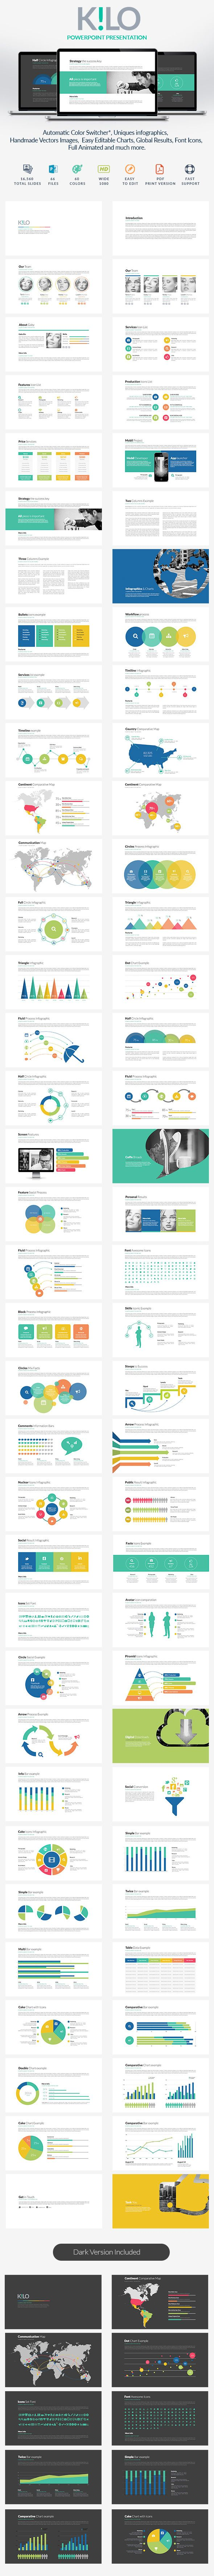 Running windows vista and microsoft office including powerpoint - Kilo Powerpoint Template